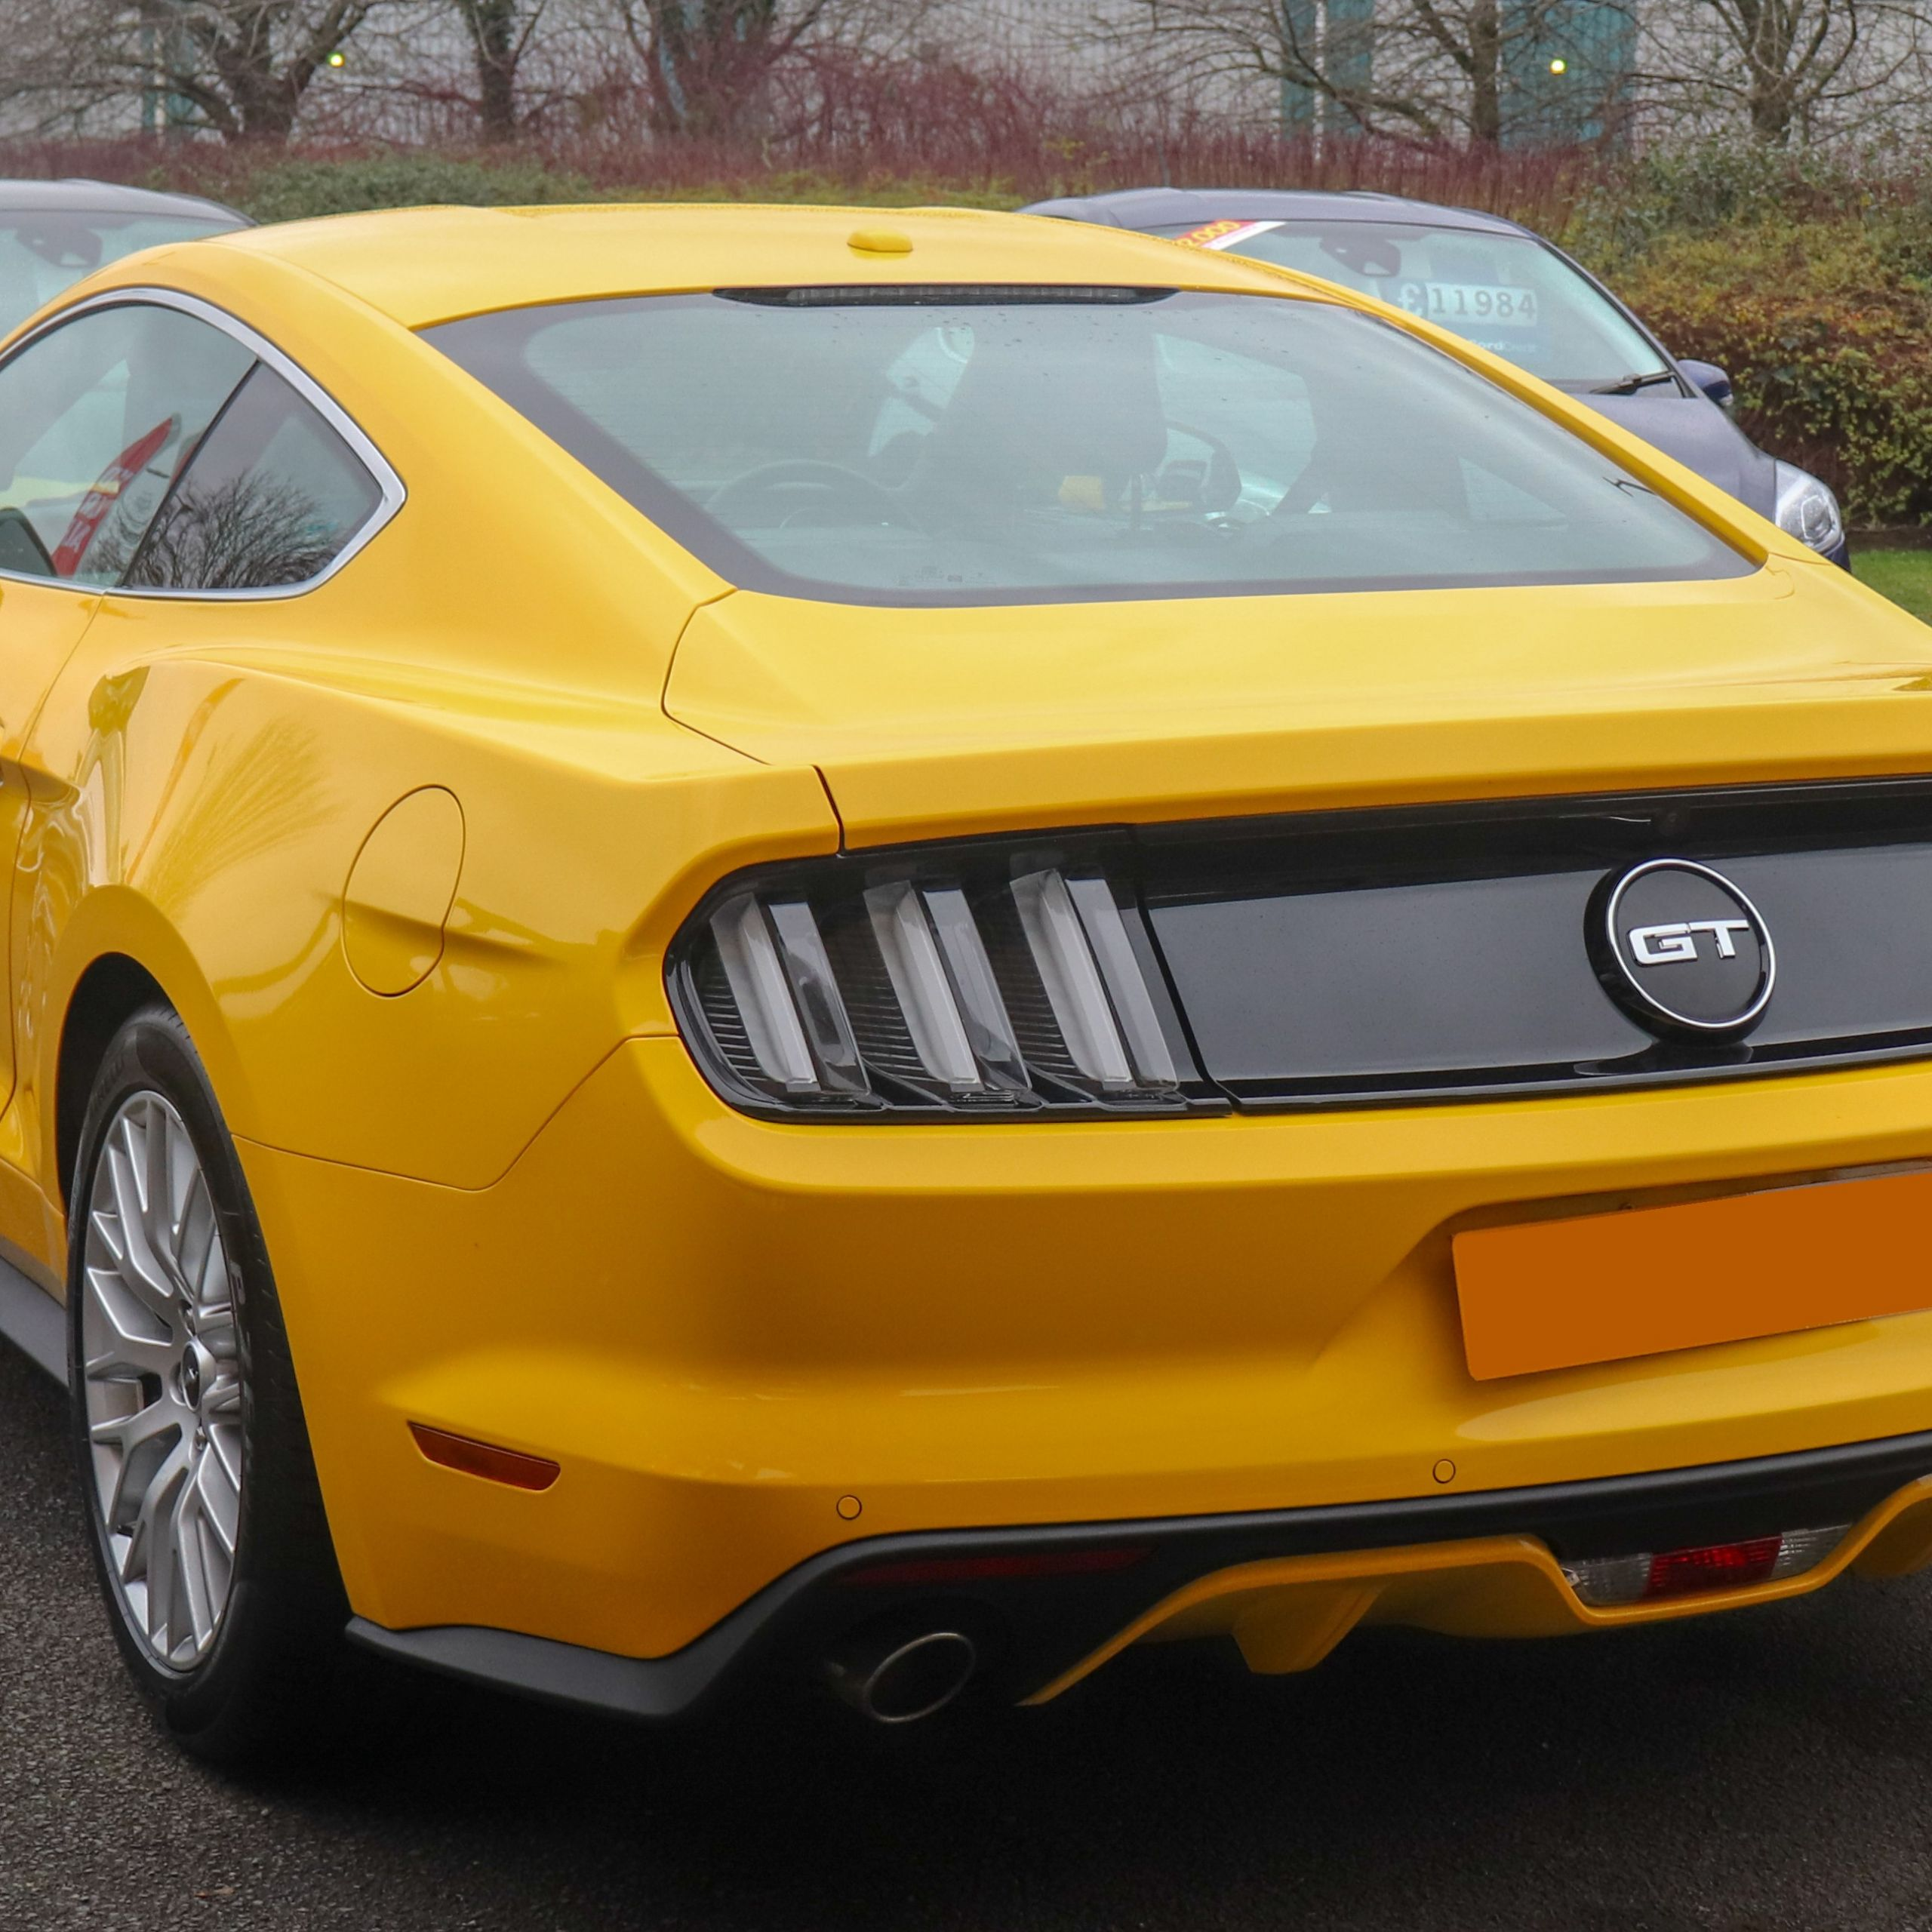 2014 ford Mustang Awesome ford Mustang Sixth Generation Wikiwand